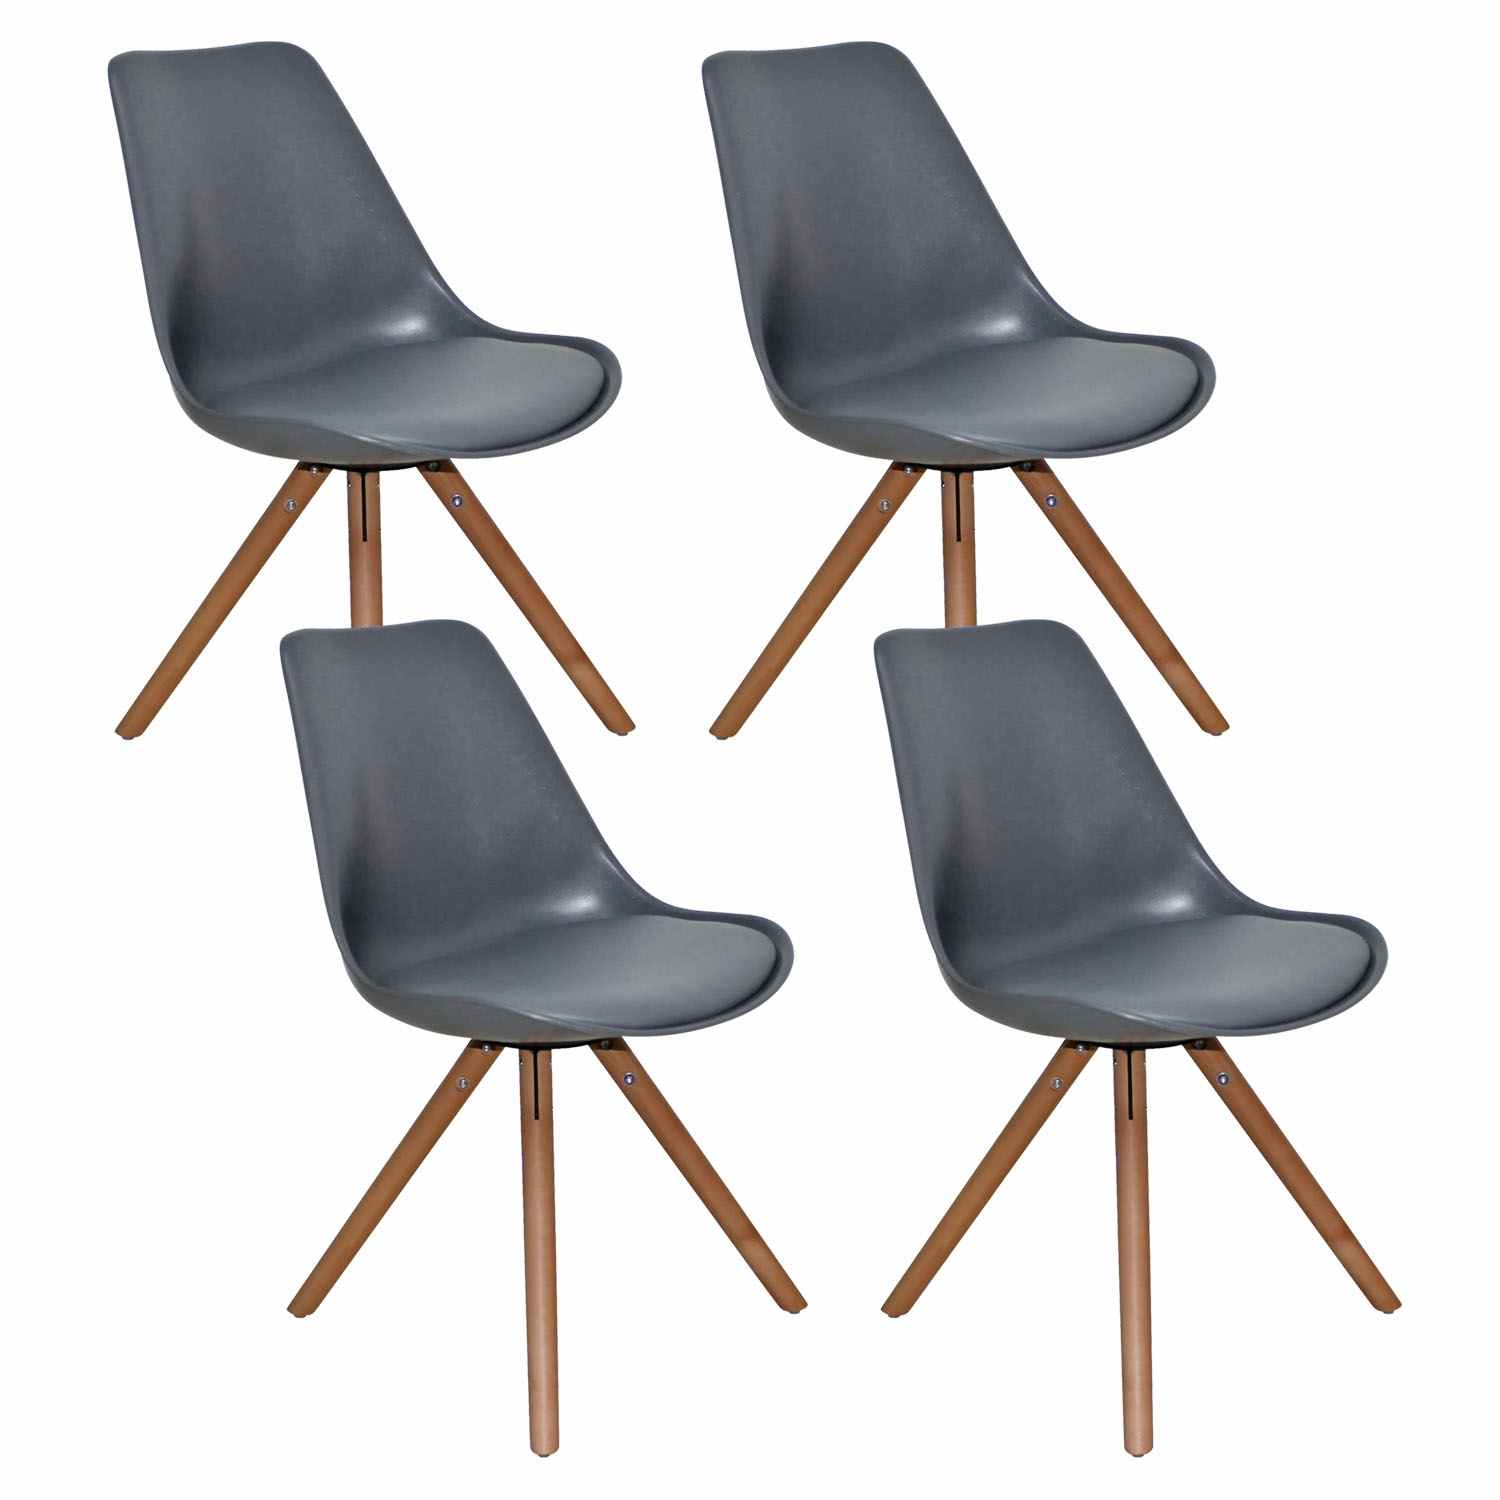 Deco in paris lot de 4 chaises design gris velta velta for Lot 4 chaises